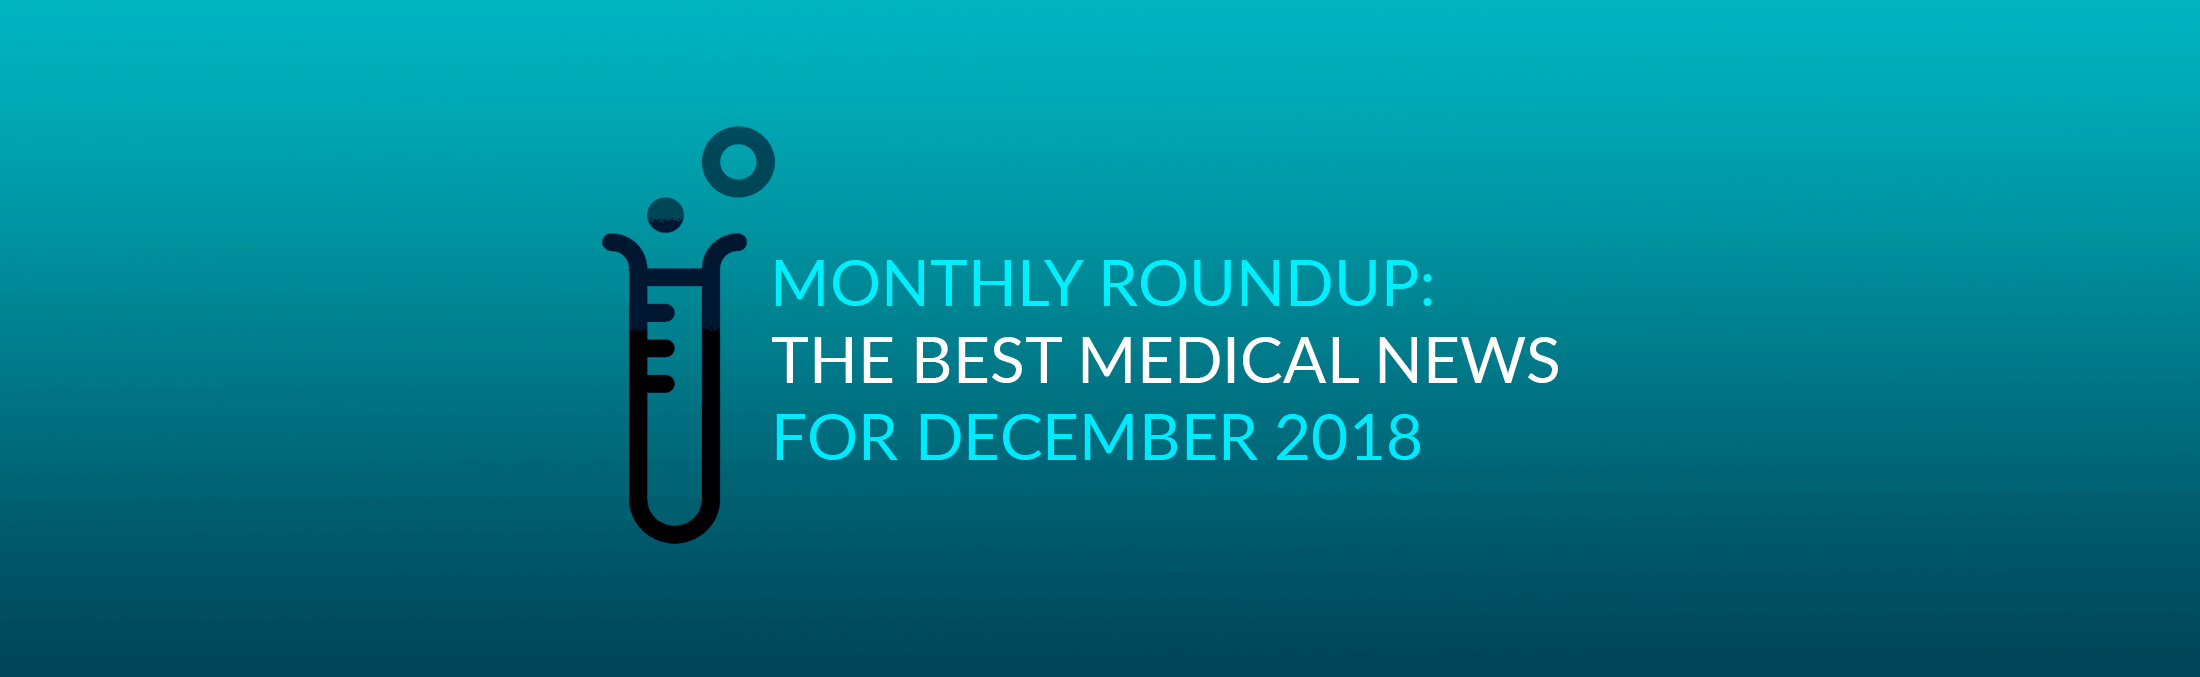 Best medical news 2018 december